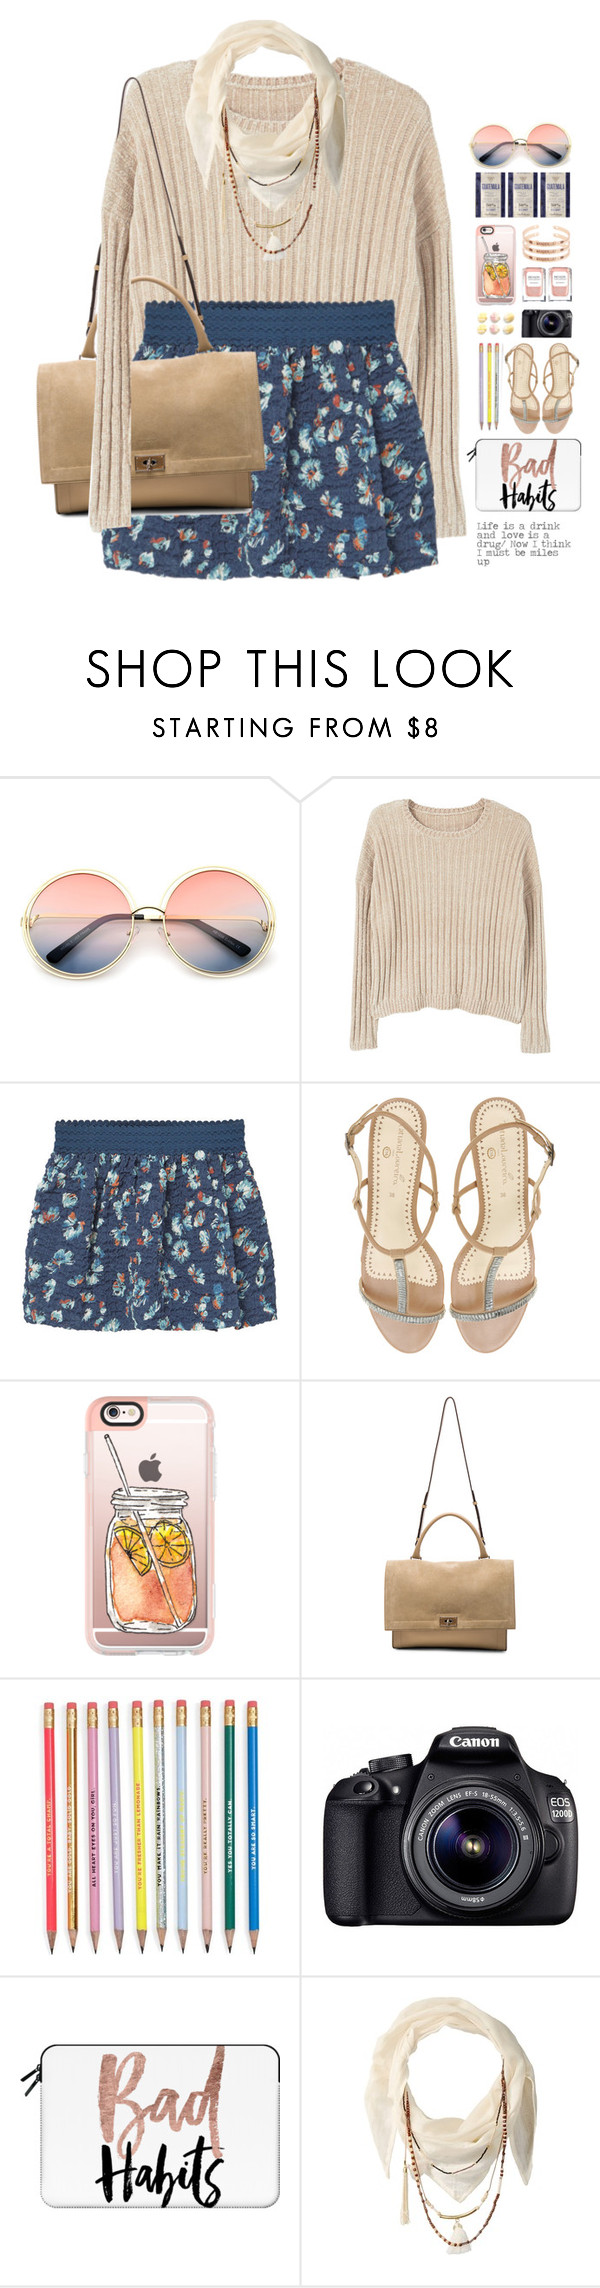 """*1684 (SCHOOLGIRL SERIES XI - SWEET SMARTIE)"" by cutekawaiiandgoodlooking ❤ liked on Polyvore featuring ZeroUV, MANGO, Casetify, Givenchy, Eos and BCBGeneration"